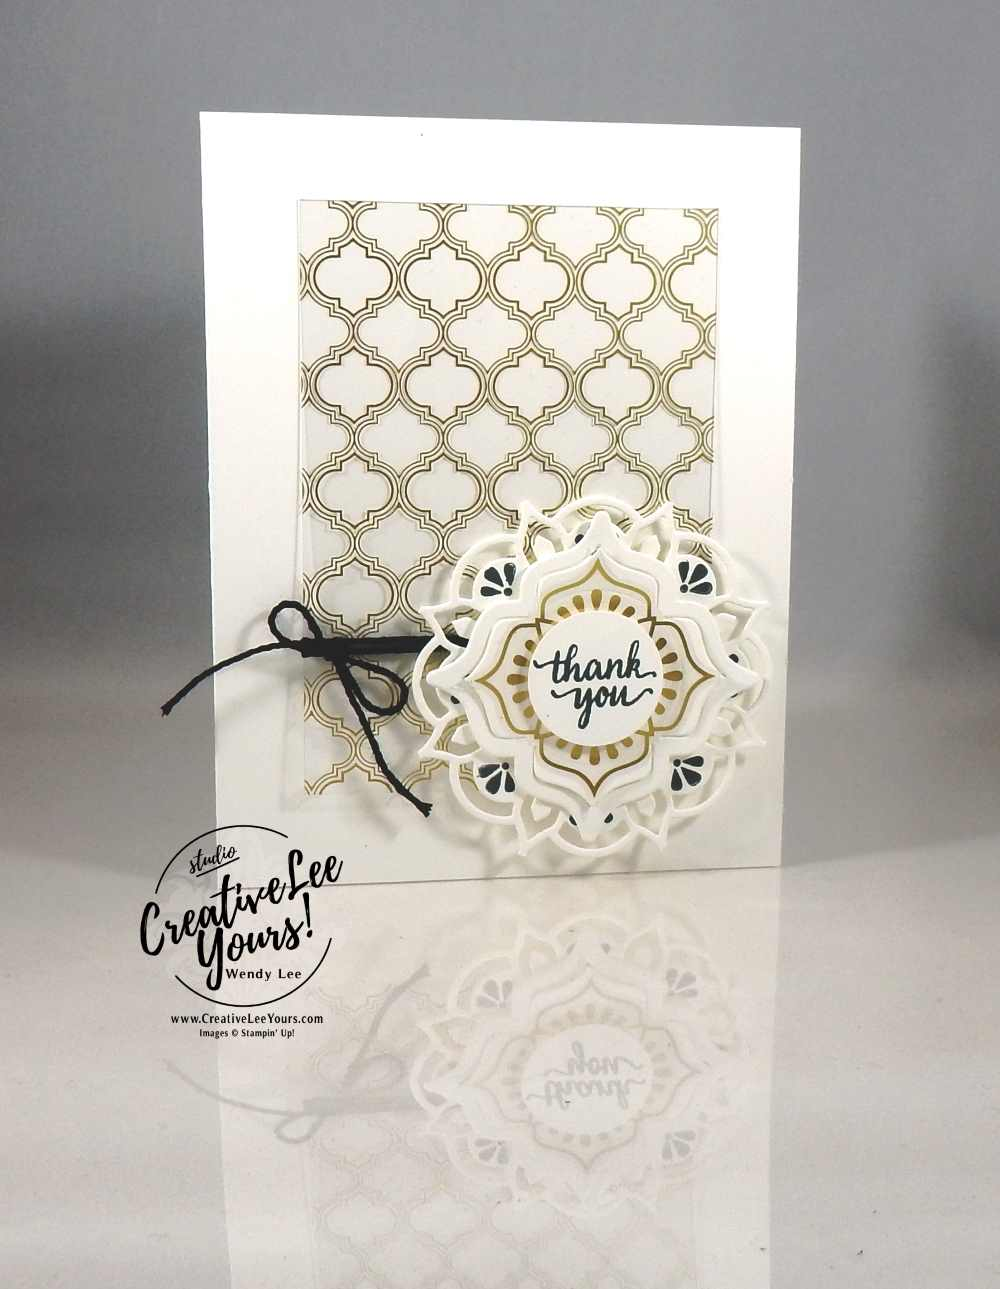 Eastern Medallion Thank You by Wendy Lee, Eastern Beauty stamp set, eastern medallion Thinlits, eastern palace bundle, stampin up, #creativeleeyours, creatively yours, handmade thank you card